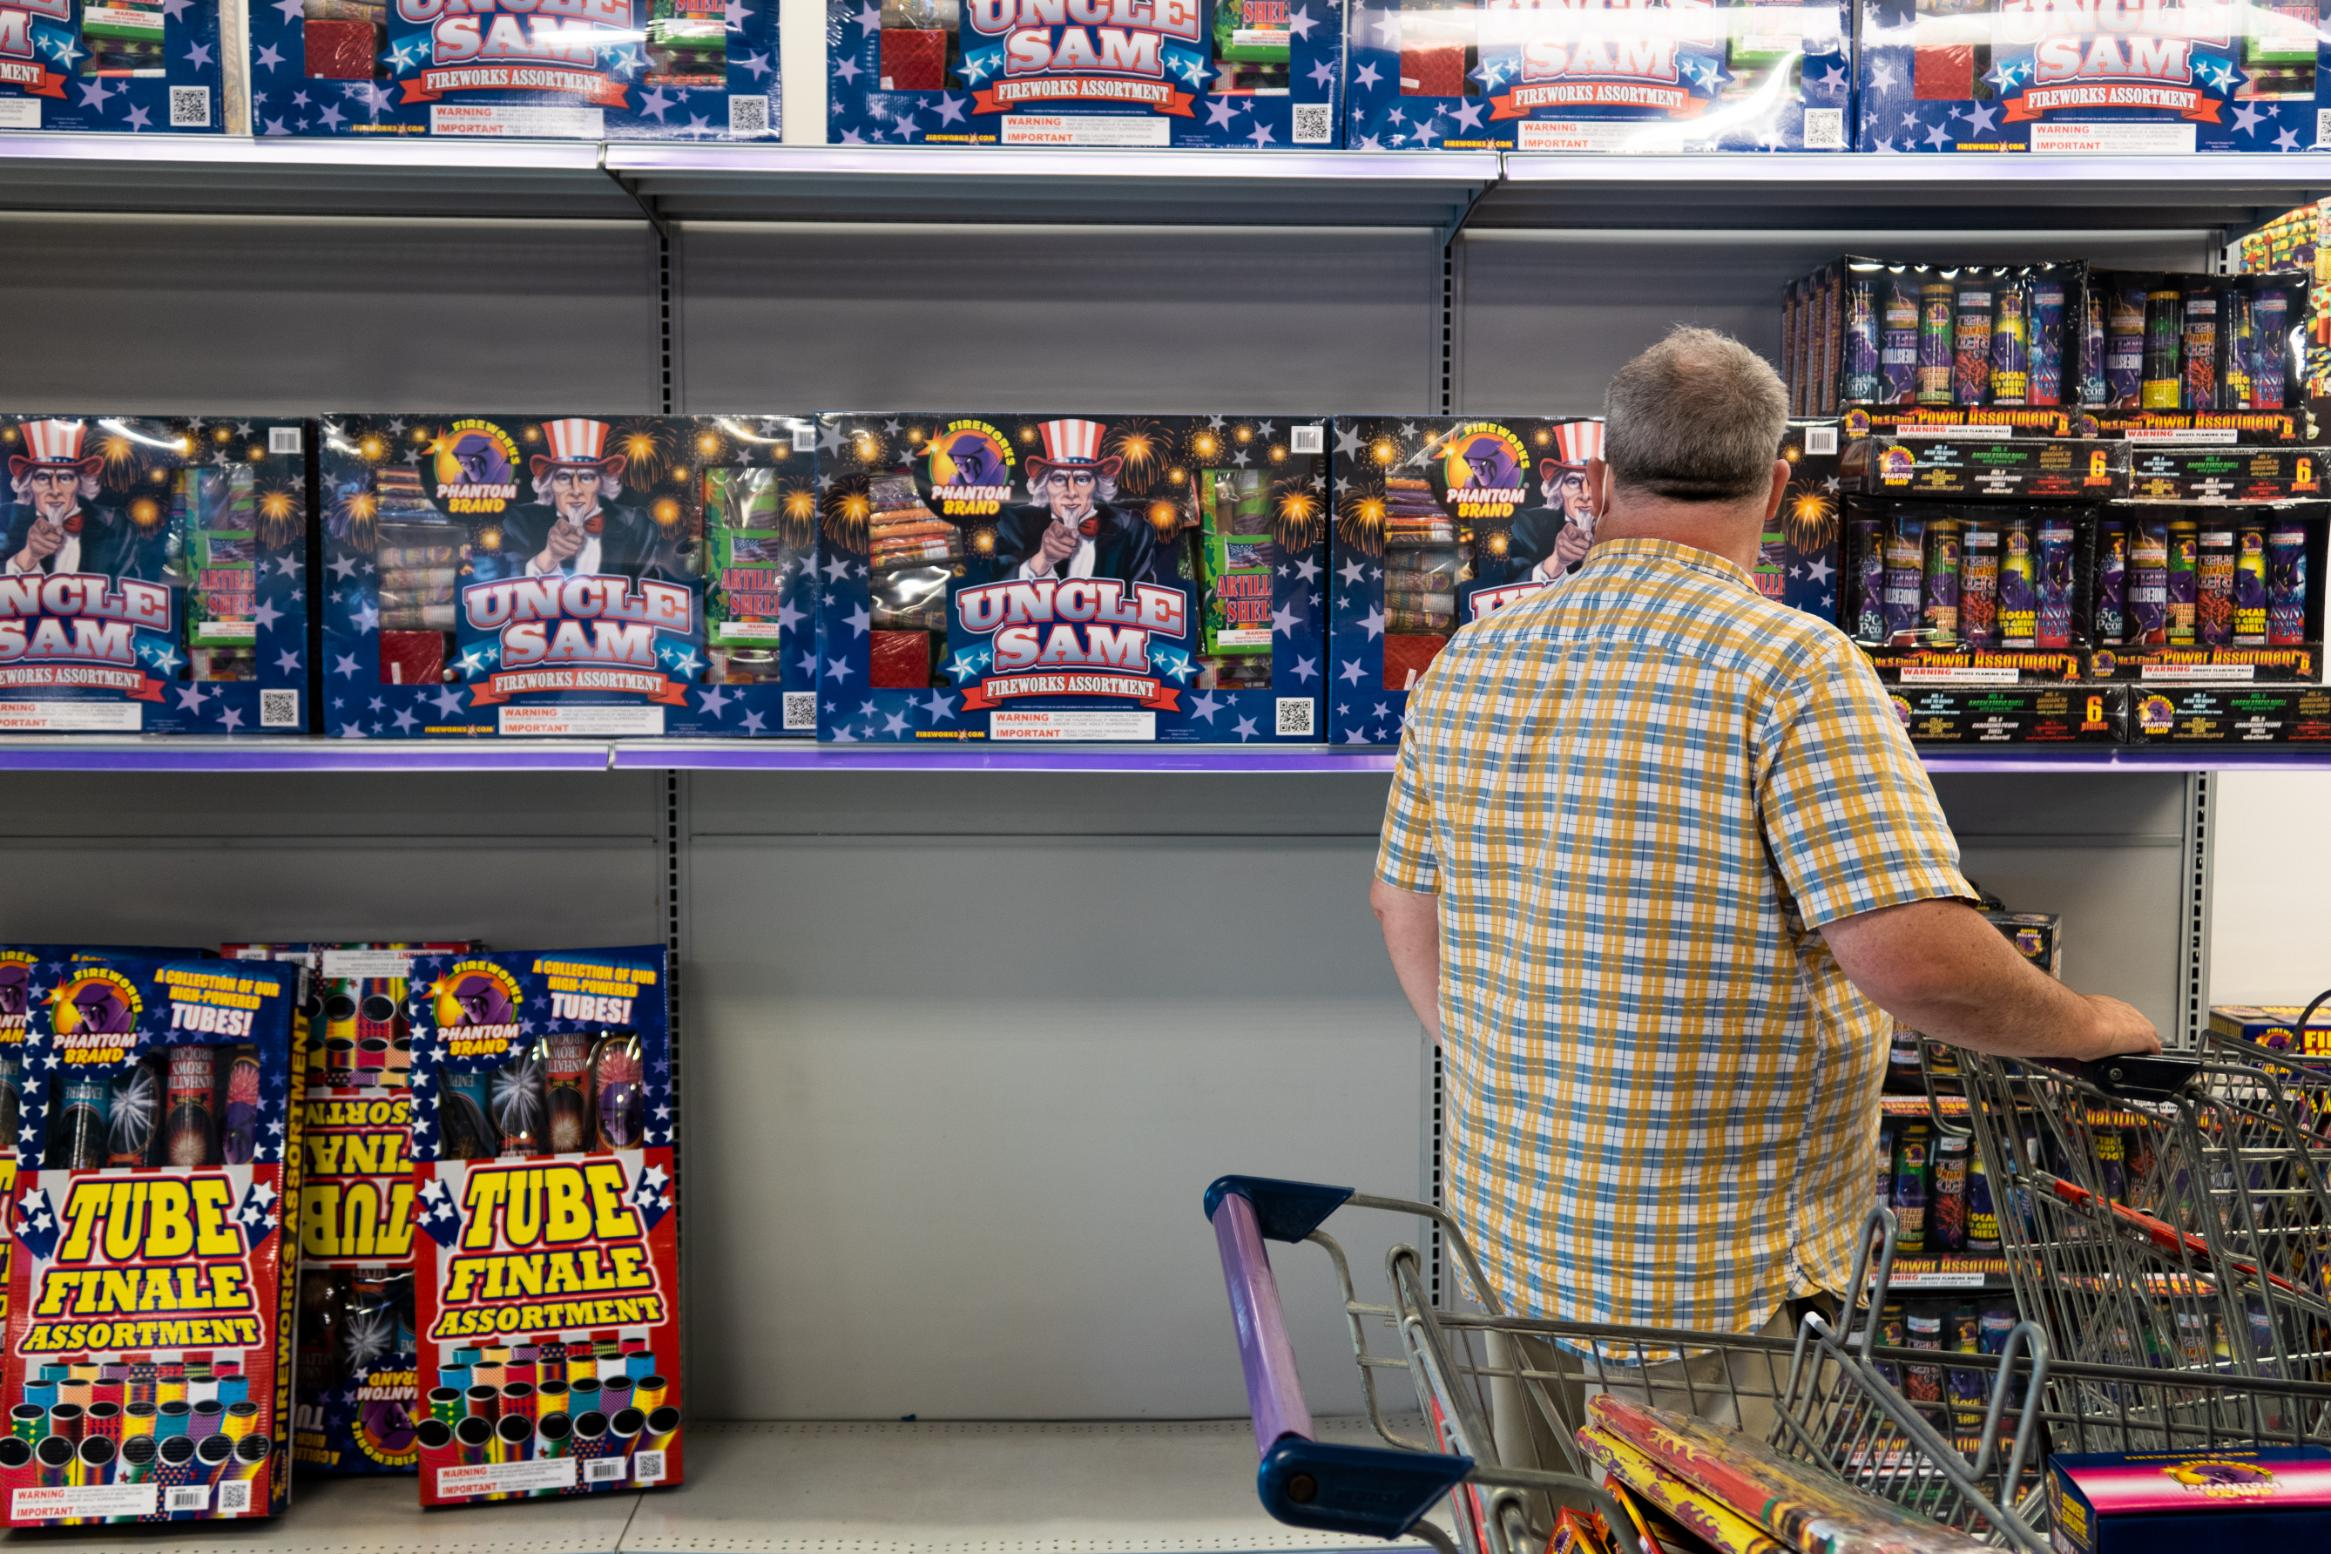 America is running out of fireworks